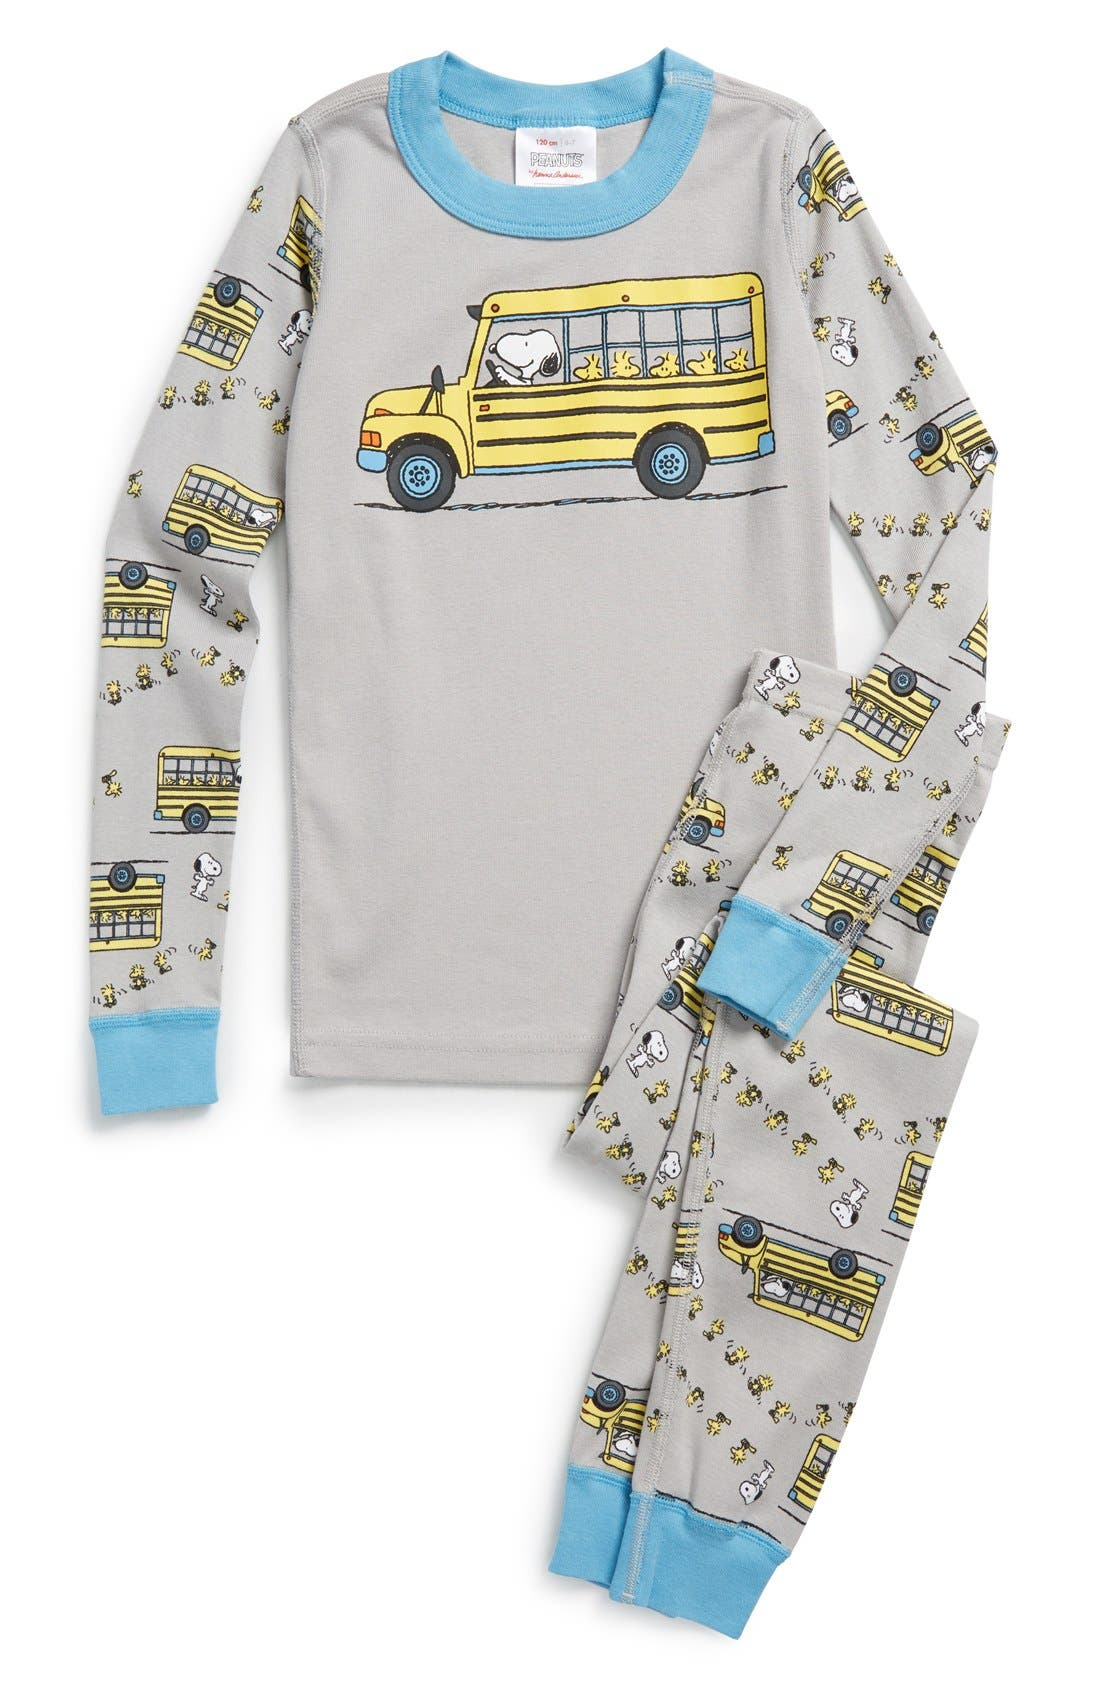 HANNA ANDERSSON 'Peanuts<sup>®</sup> - Snoopy Bus' Organic Cotton Two-Piece Fitted Pajamas, Main, color, 026